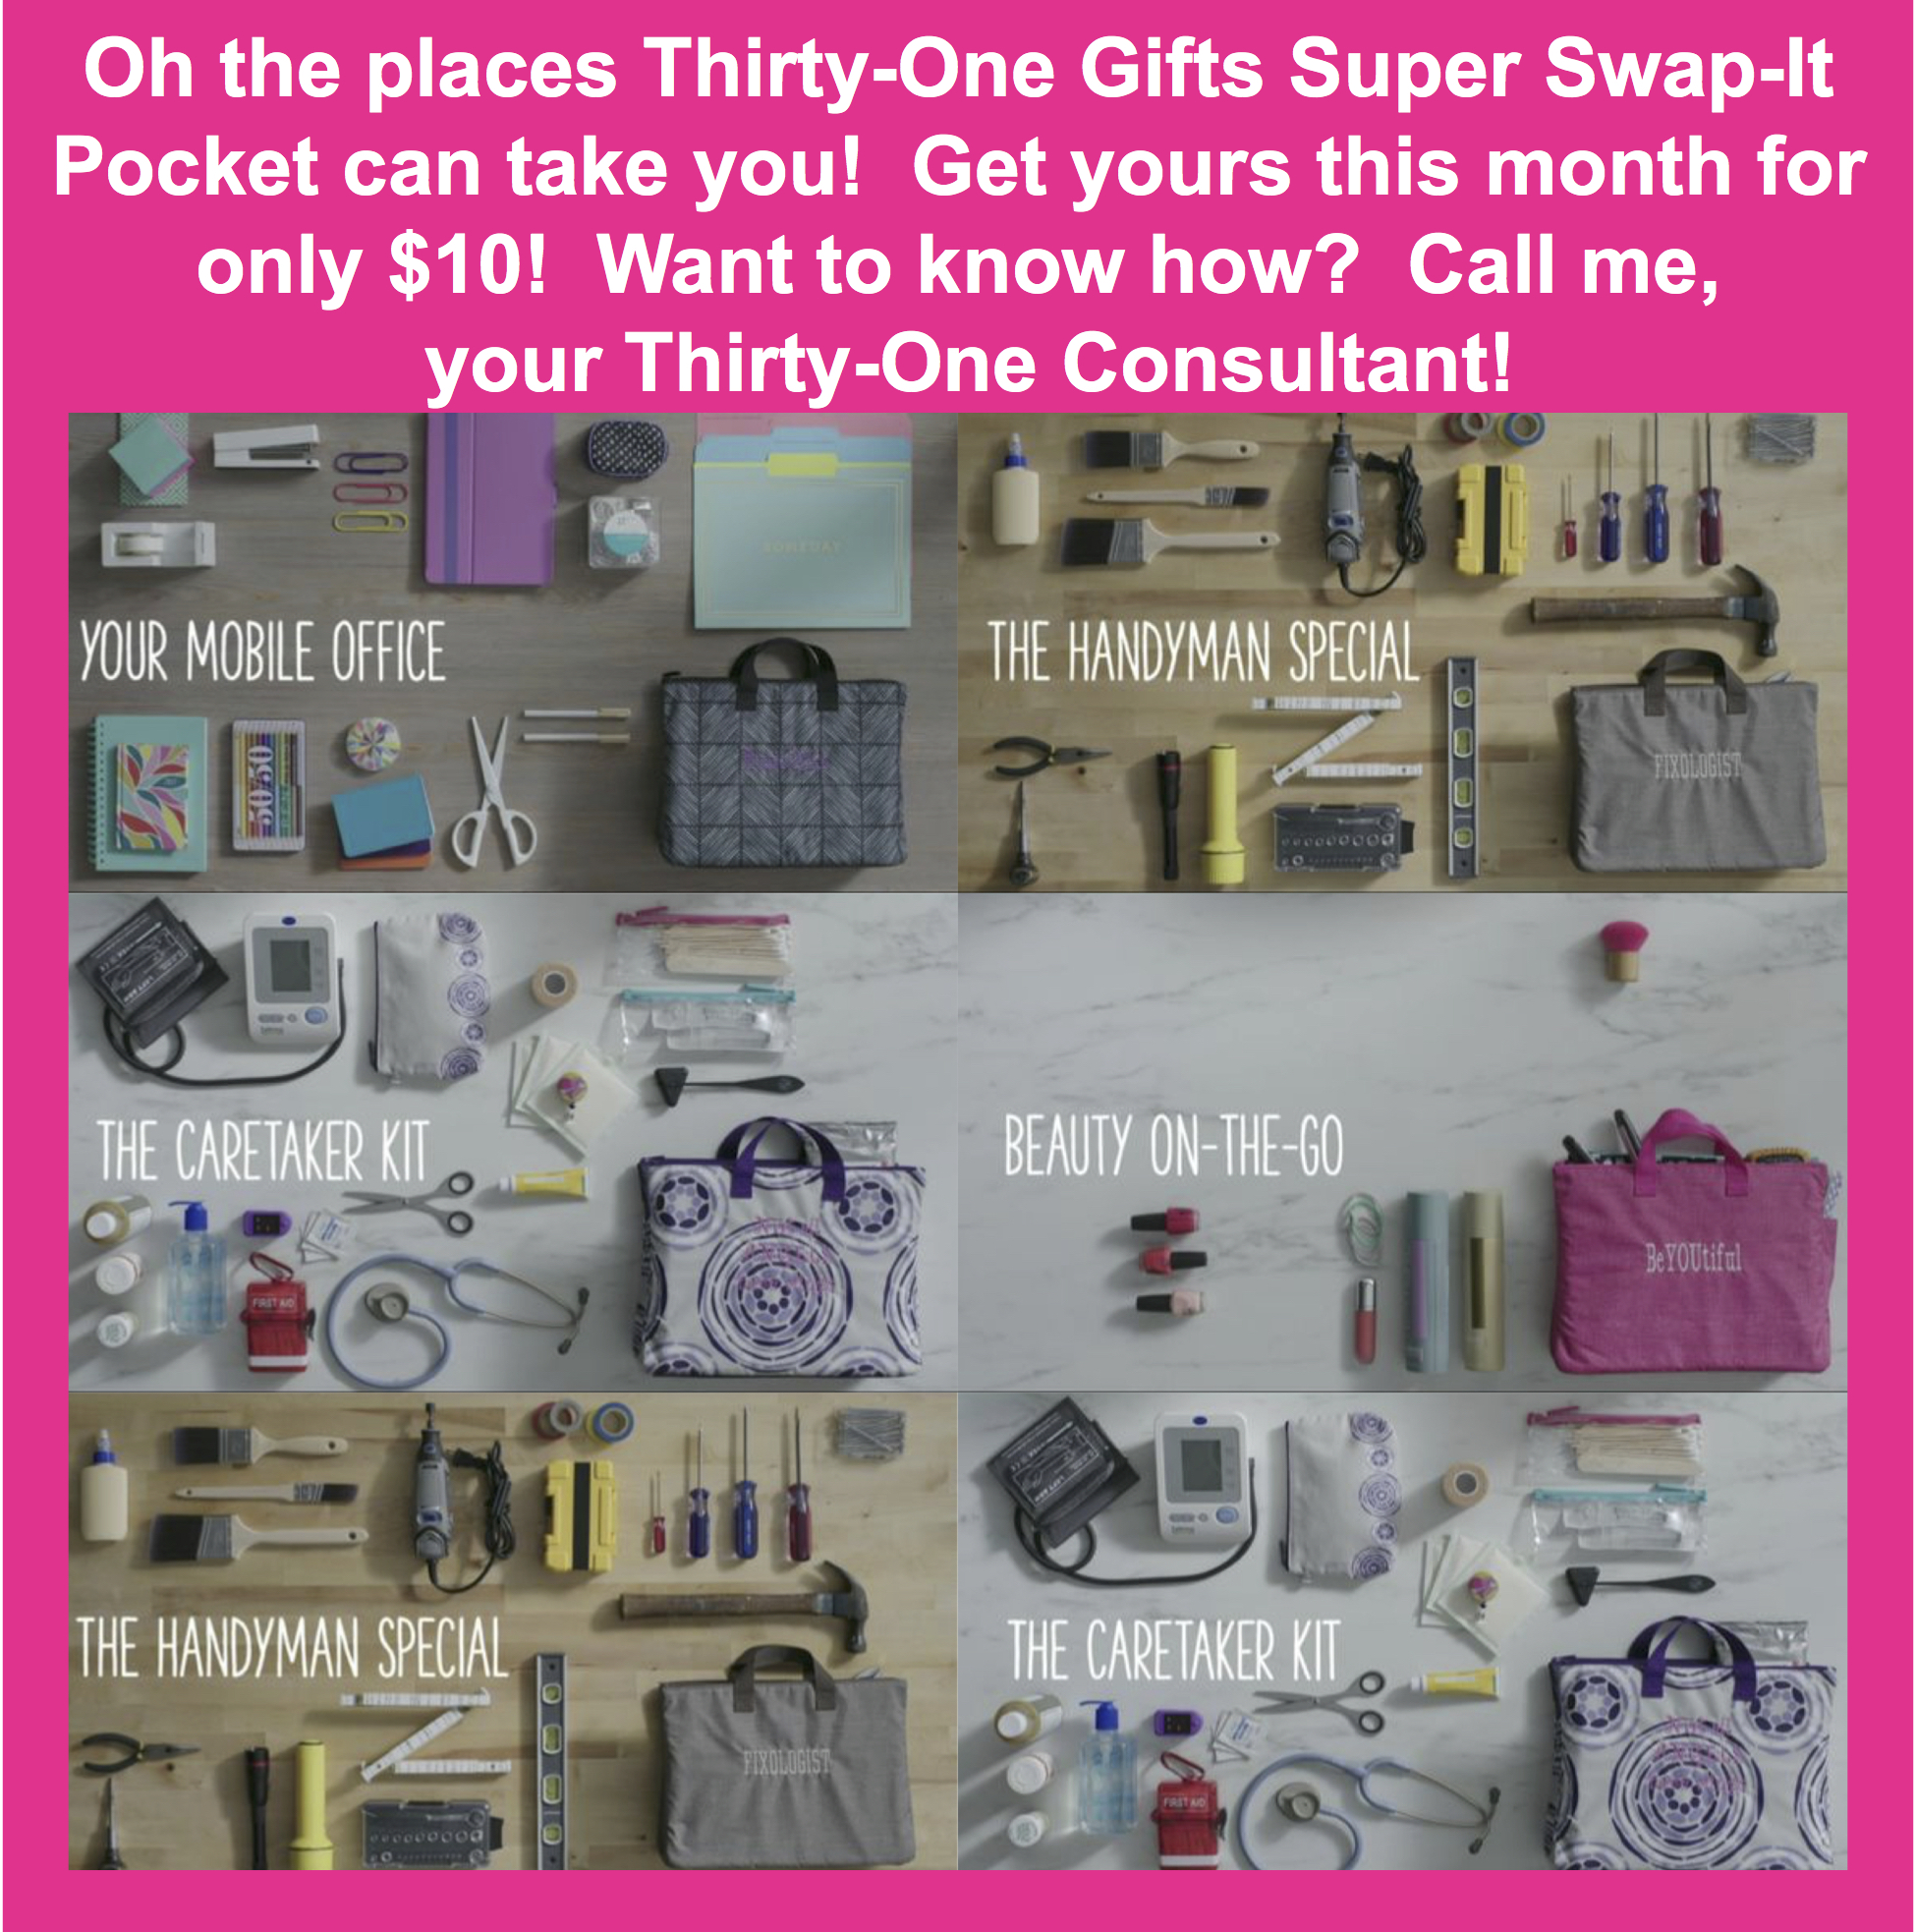 Thirty one november customer special 2014 - Thirty One Gifts Super Swap It Pocket